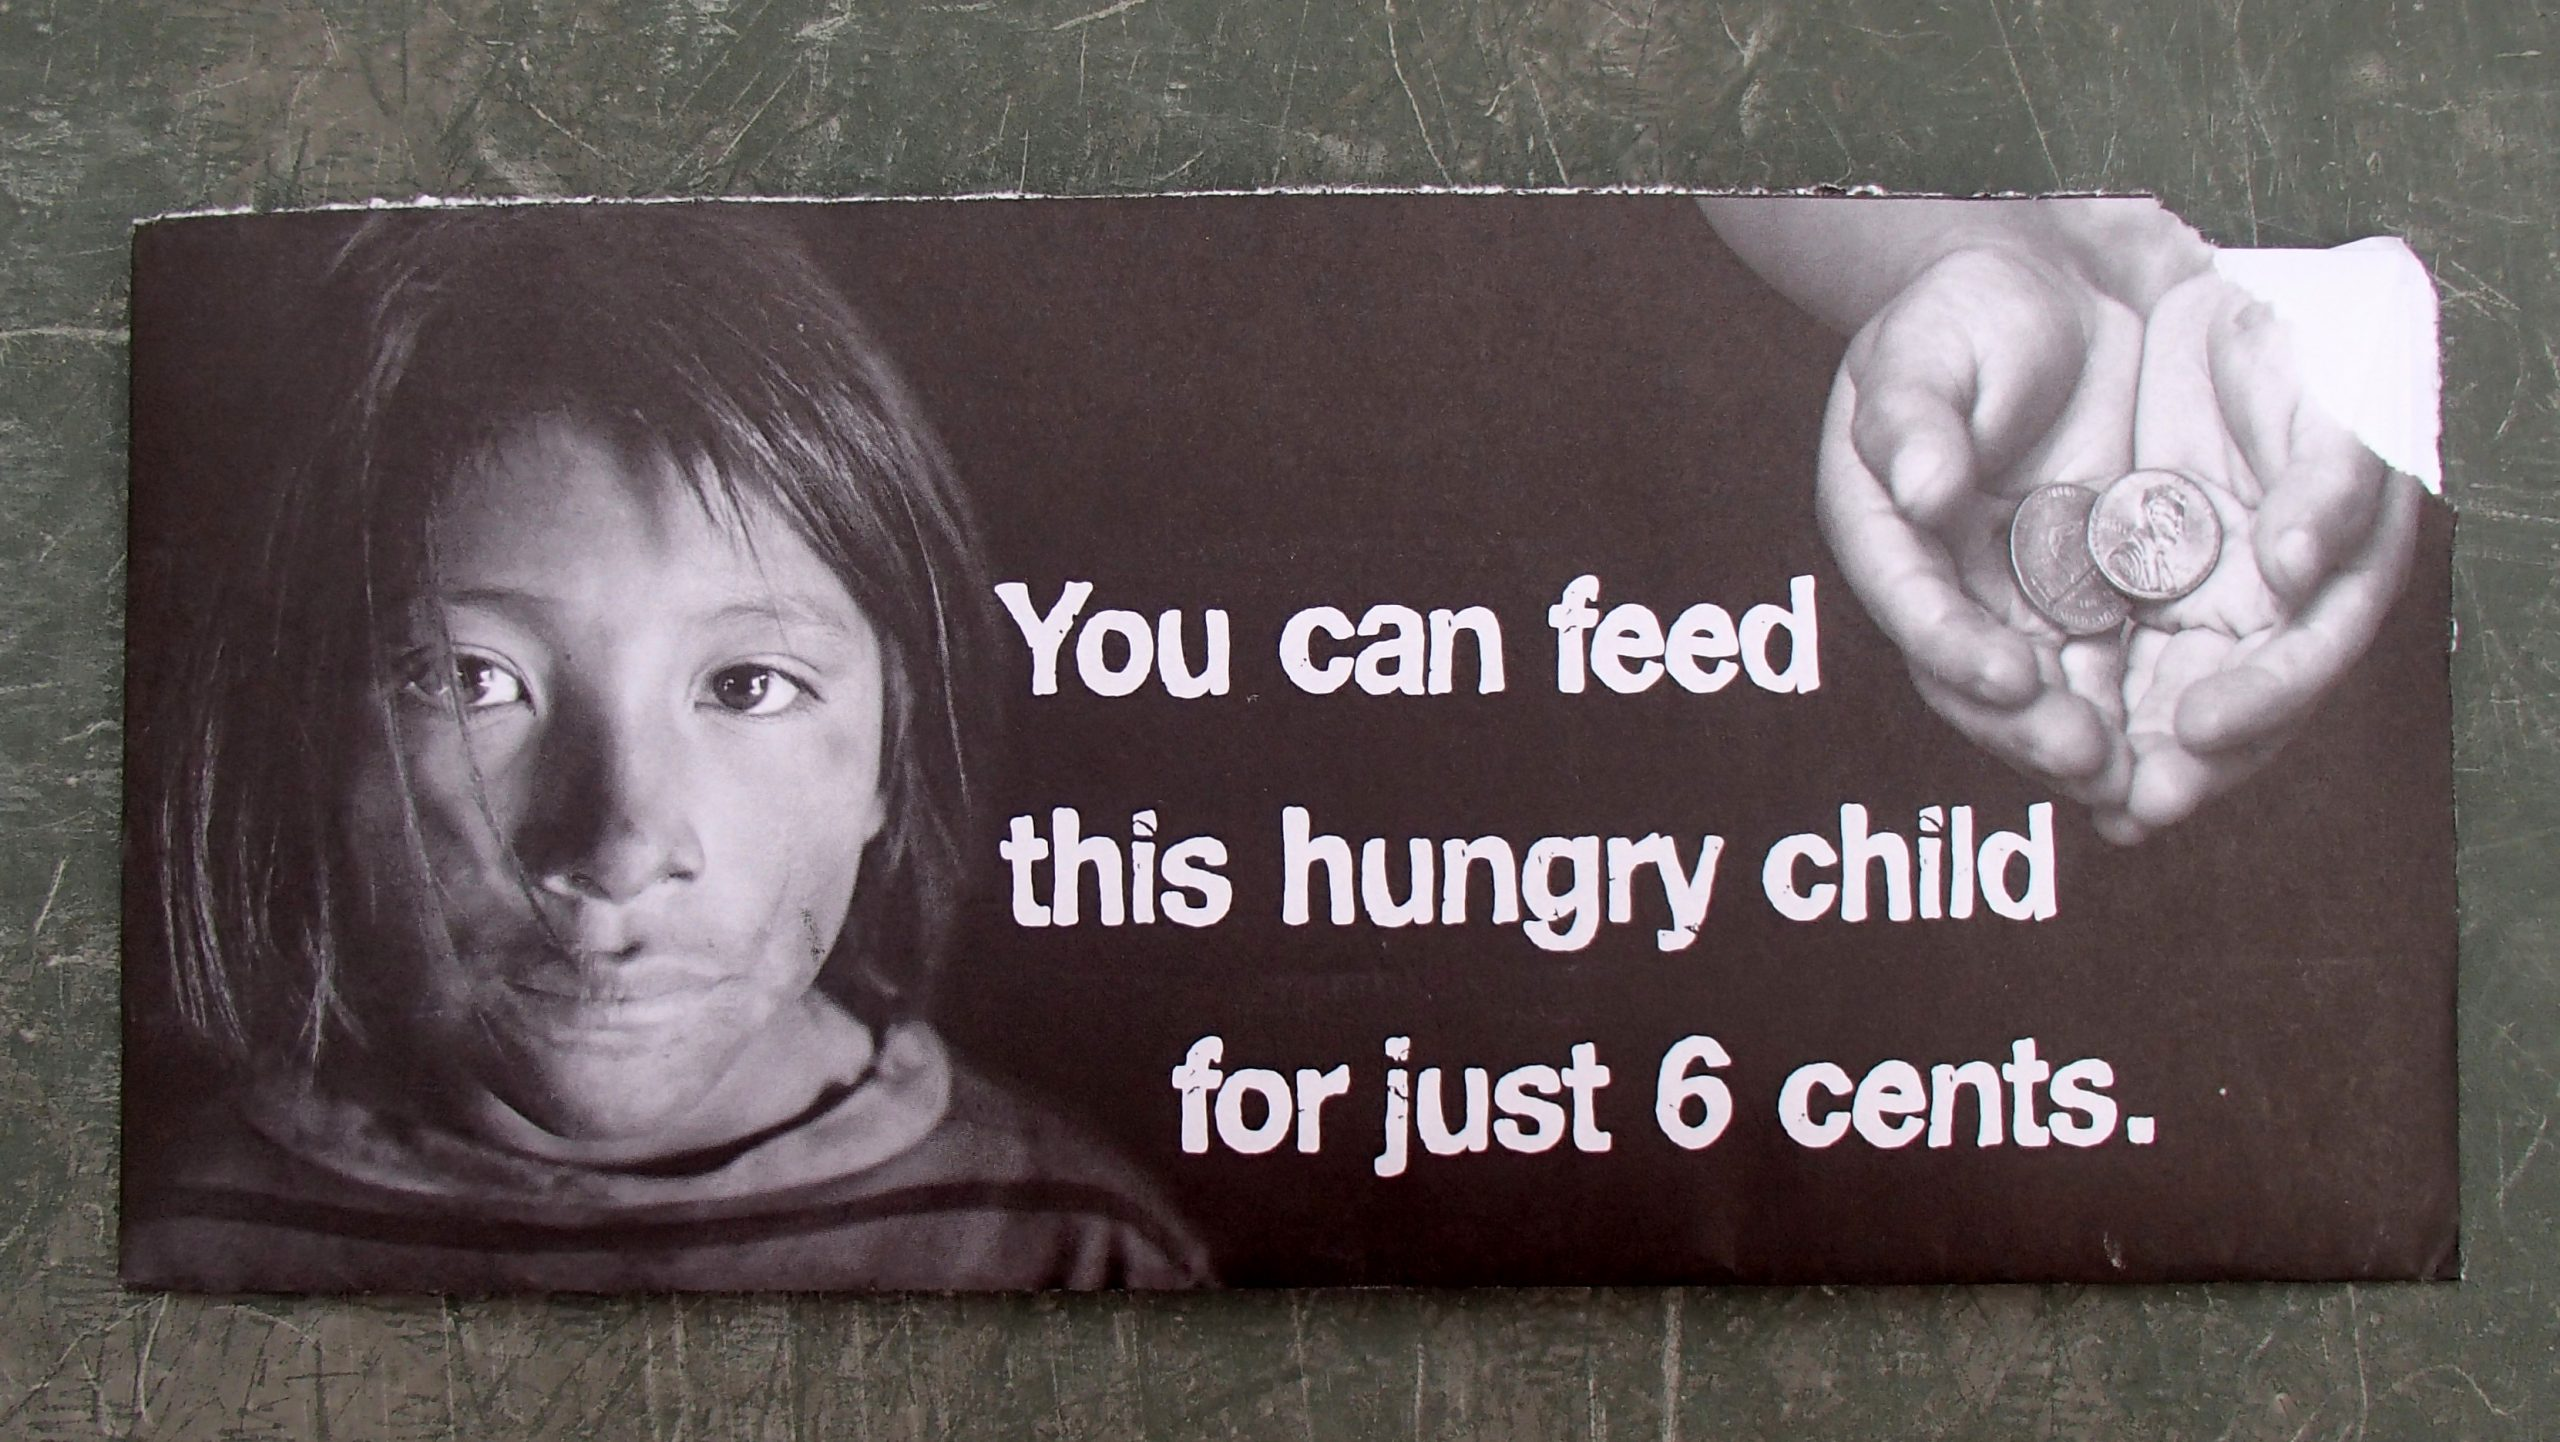 Poverty poster of a child